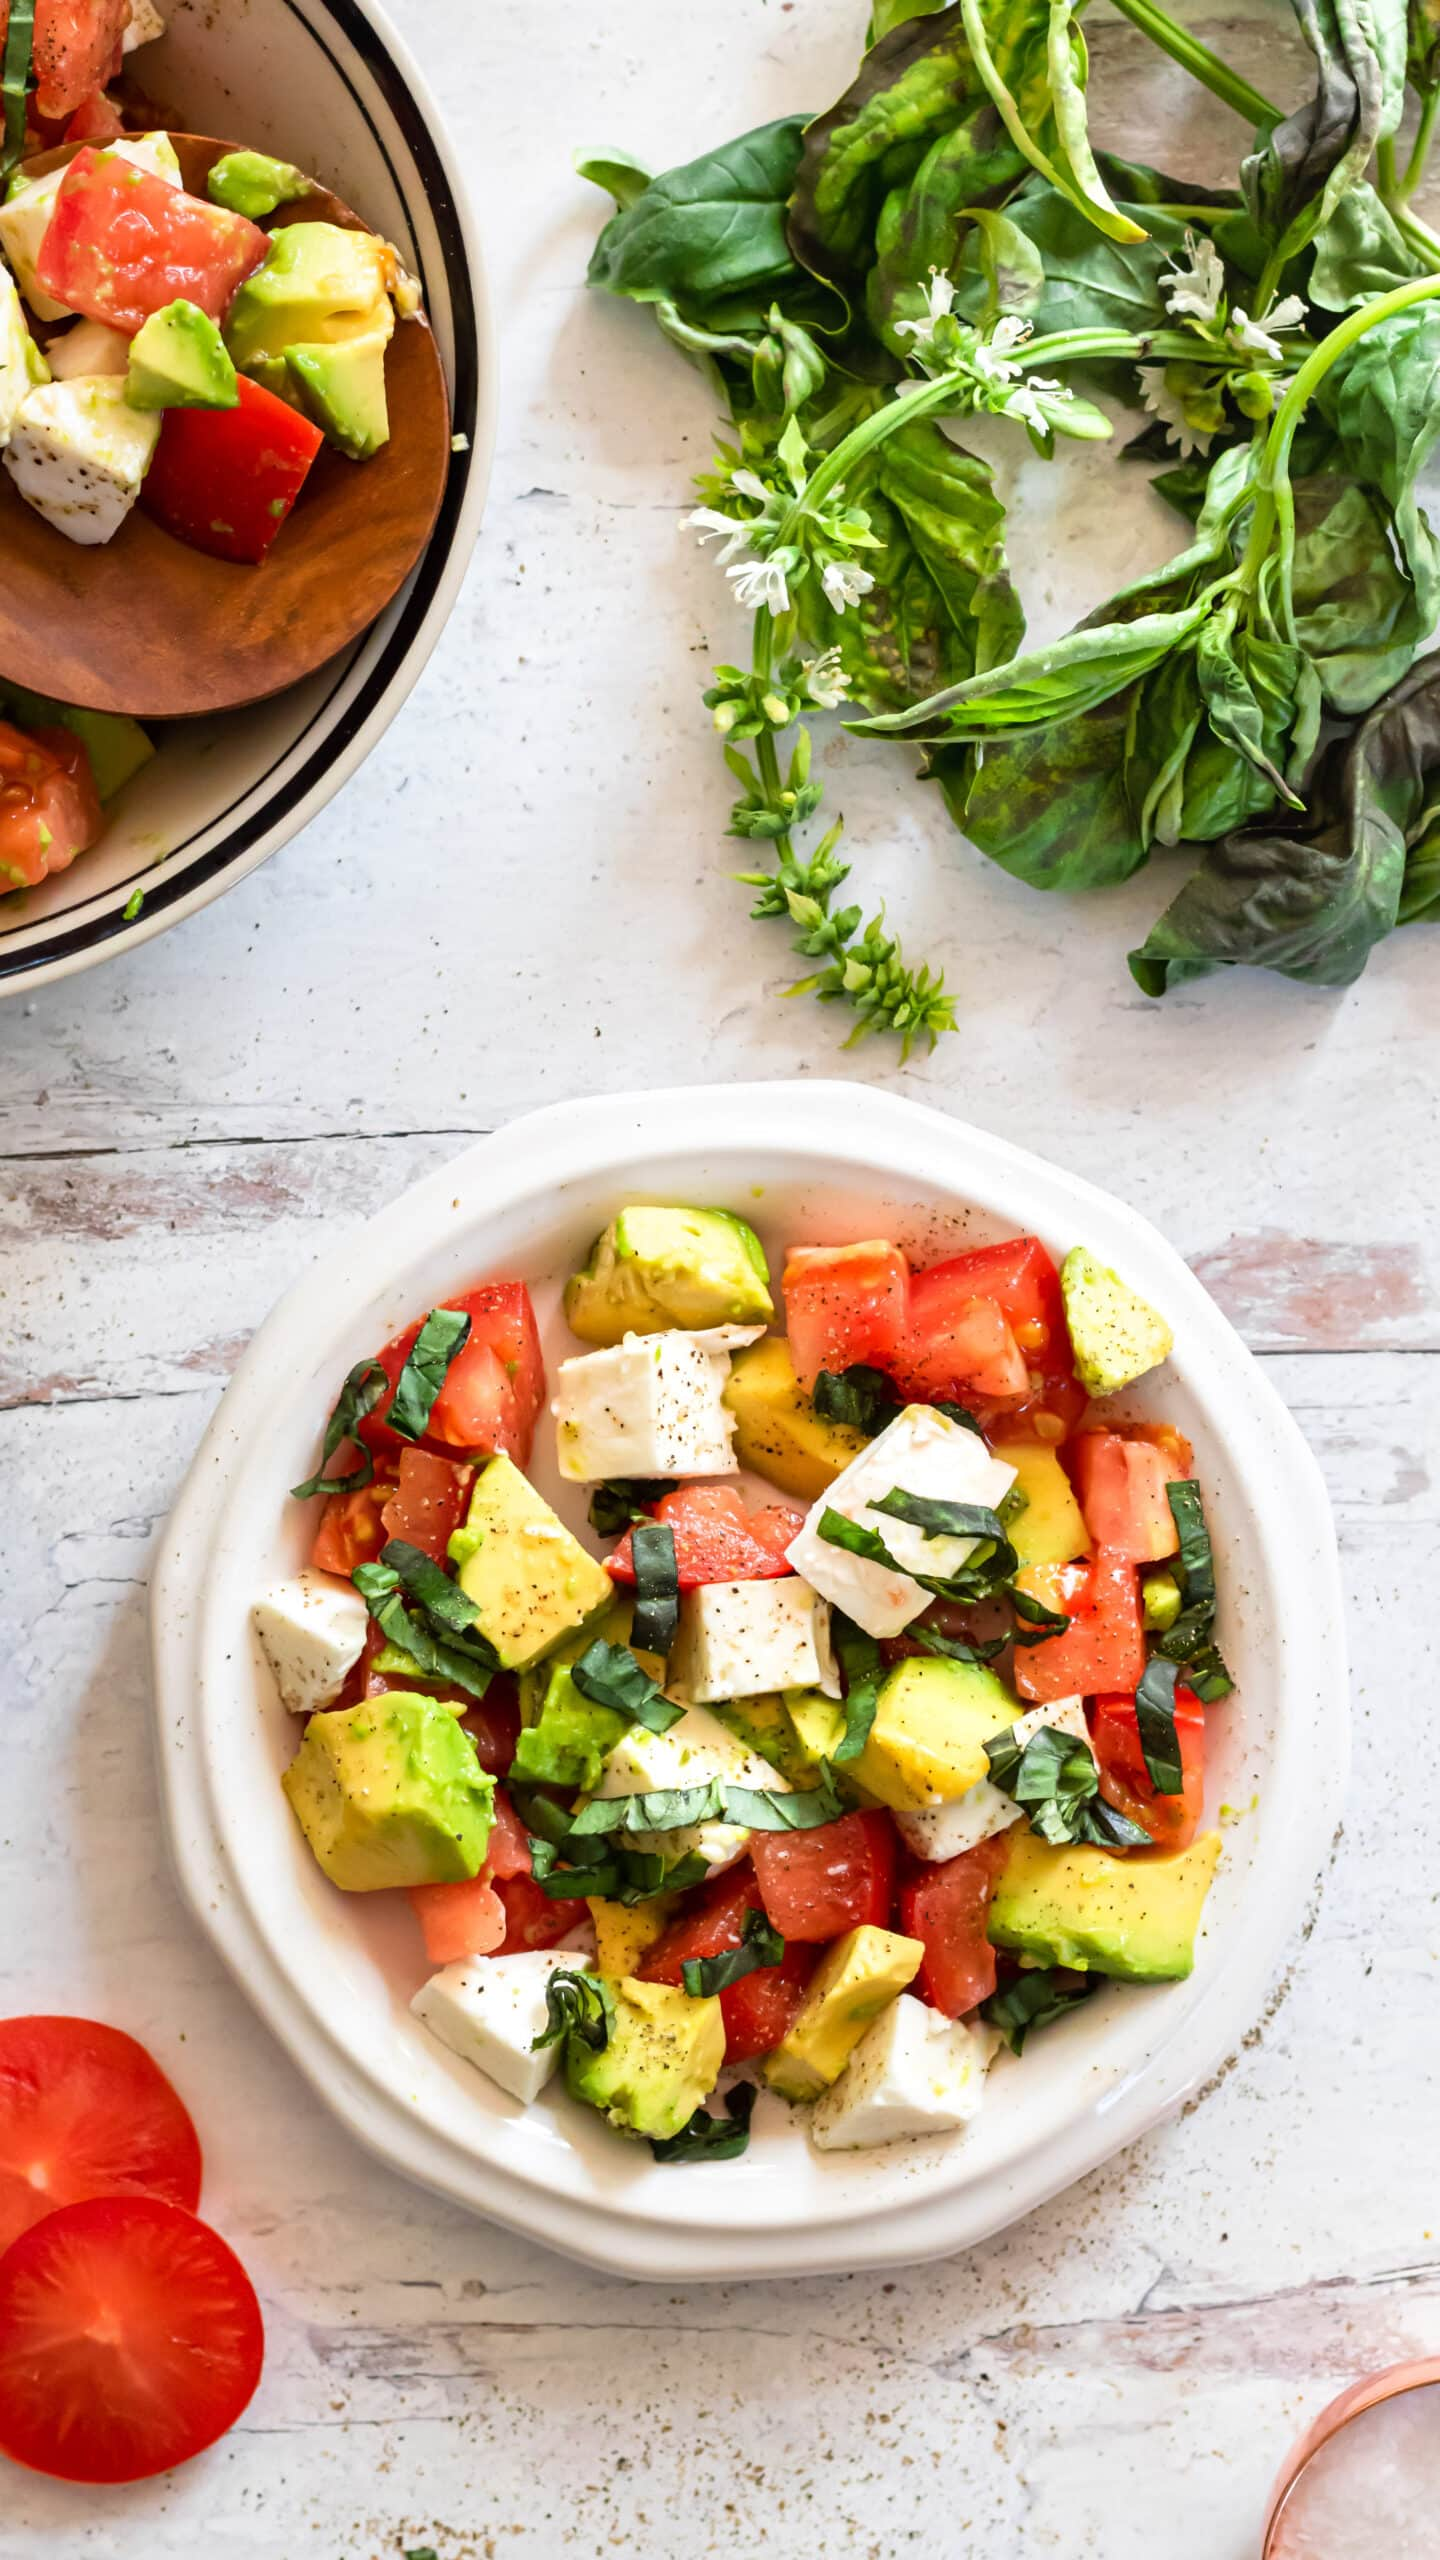 a long vertical overhead photo showing a white plate of caprese salad in the bottom center. at the top of the photo slightly cropped out on the left is a bowl of salad, and on the right is a bunch of fresh basil.